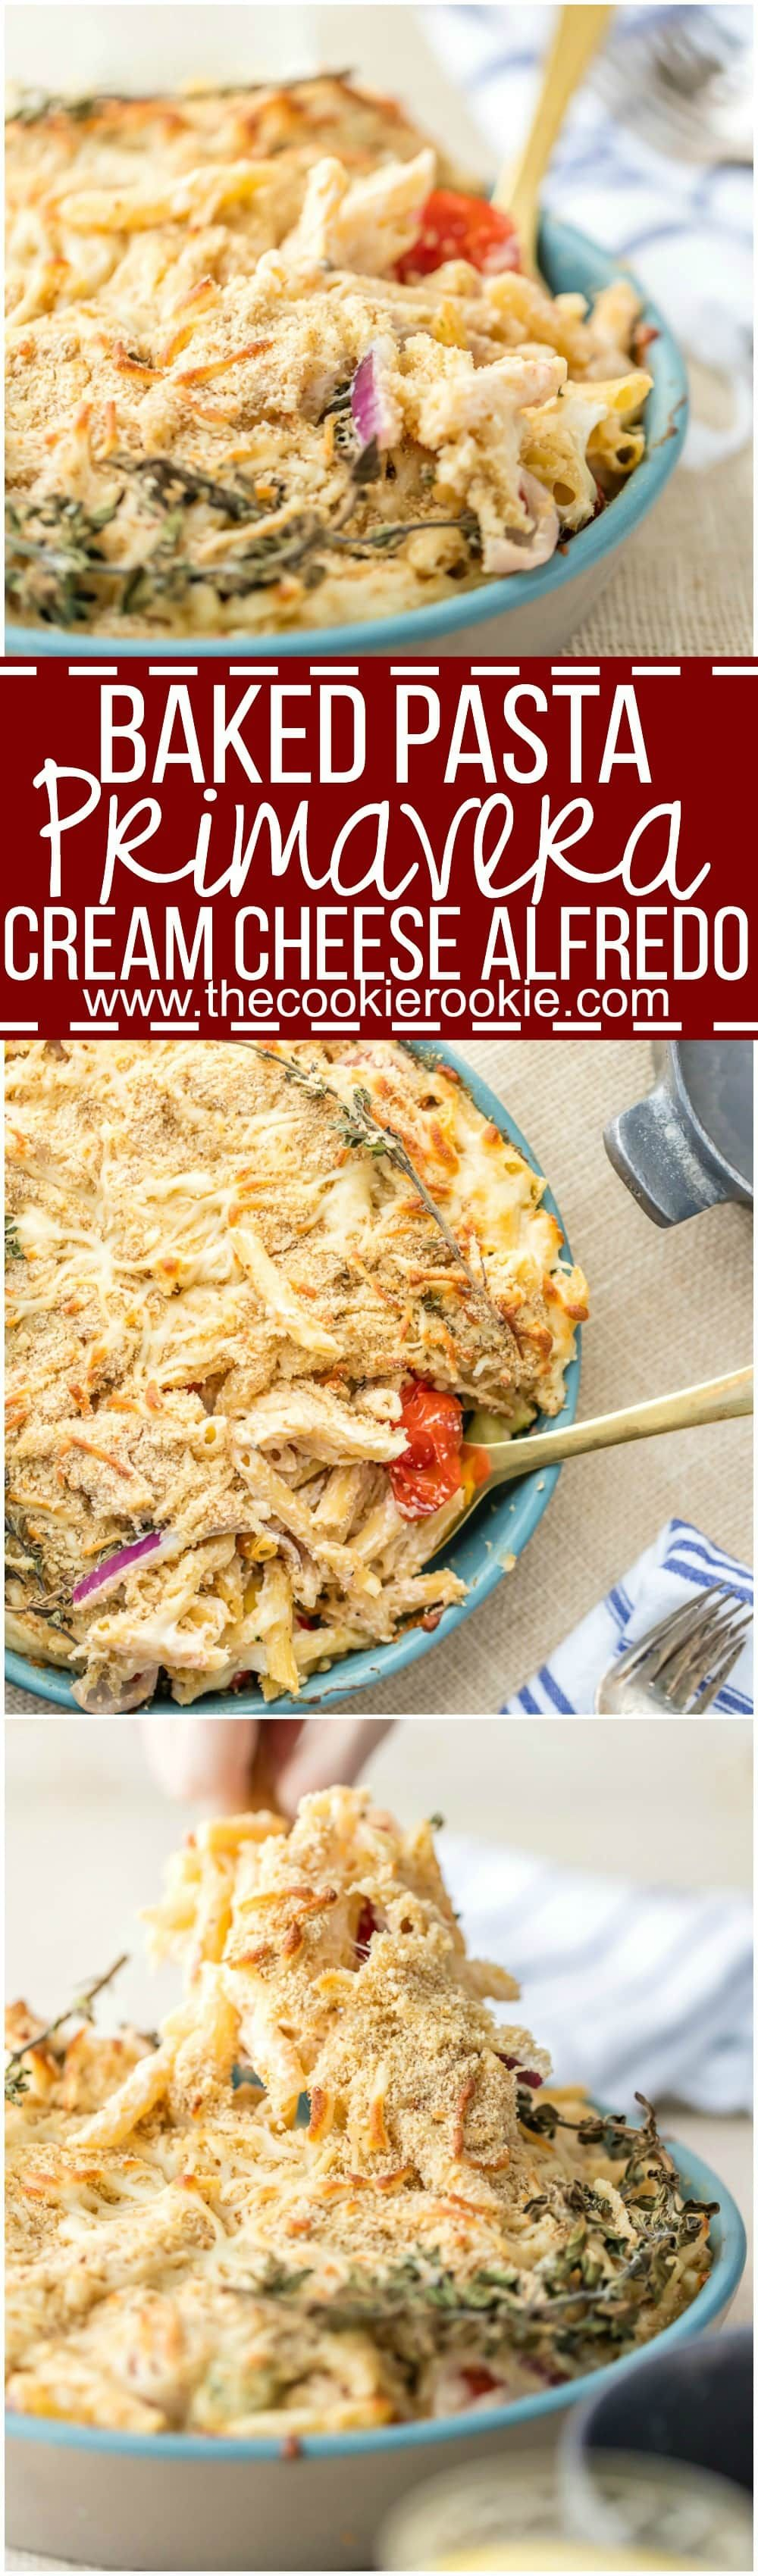 Baked Pasta Primavera With Cream Cheese Alfredo This Oven Baked Vegetable Pasta With Cheesy Cream Sauce Is Our F Baked Pasta Primavera Pasta Primavera Recipes